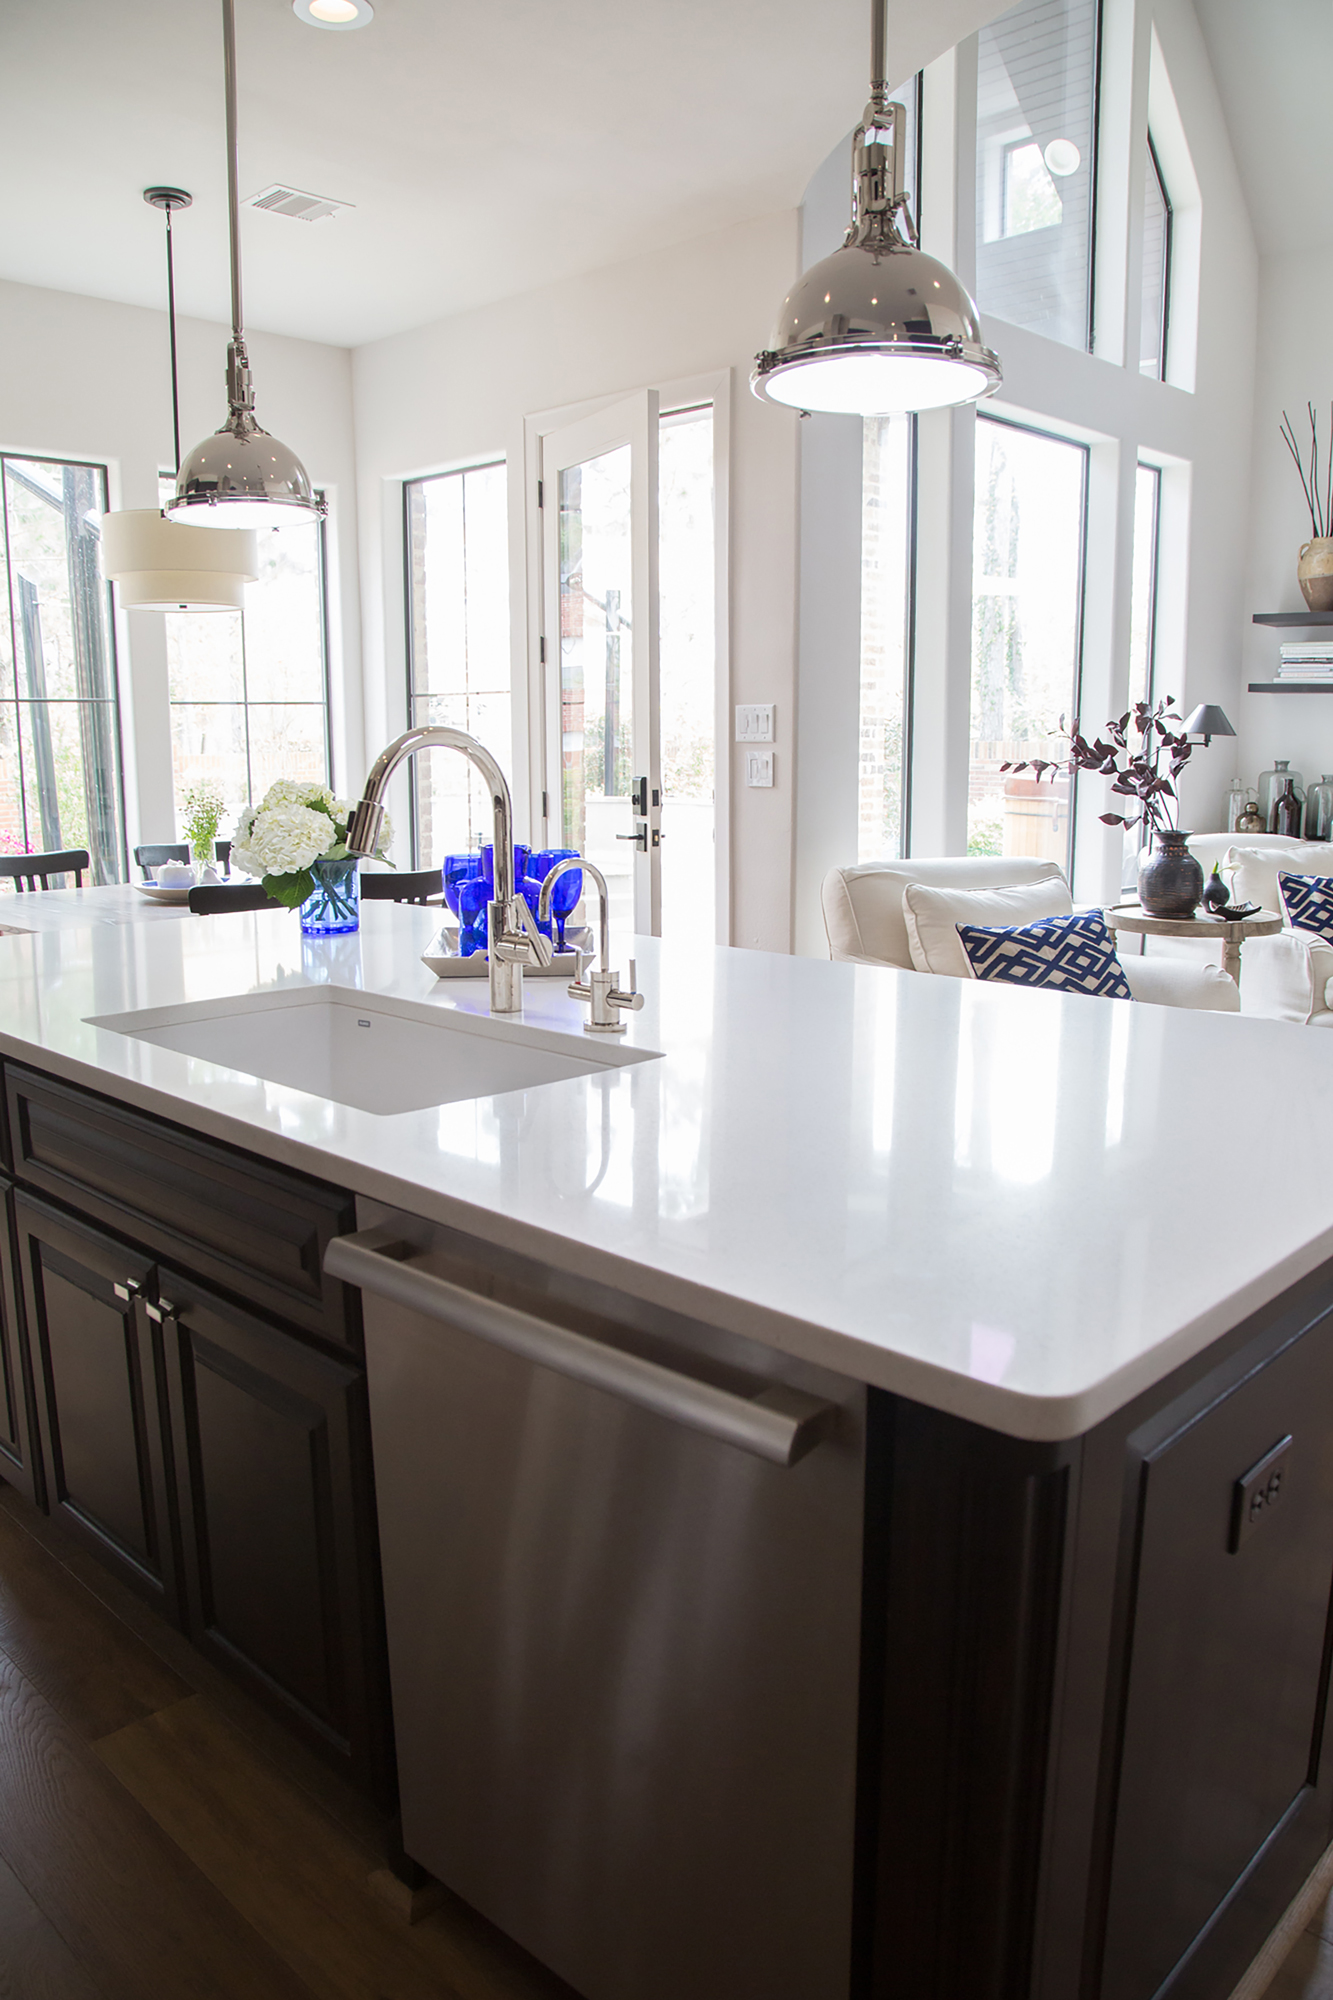 Kitchen Remodel with quartz countertops - Designer: Carla Aston, Photo by Tori Aston, #quartzcountertops #kitchenremodel #whitecountertops